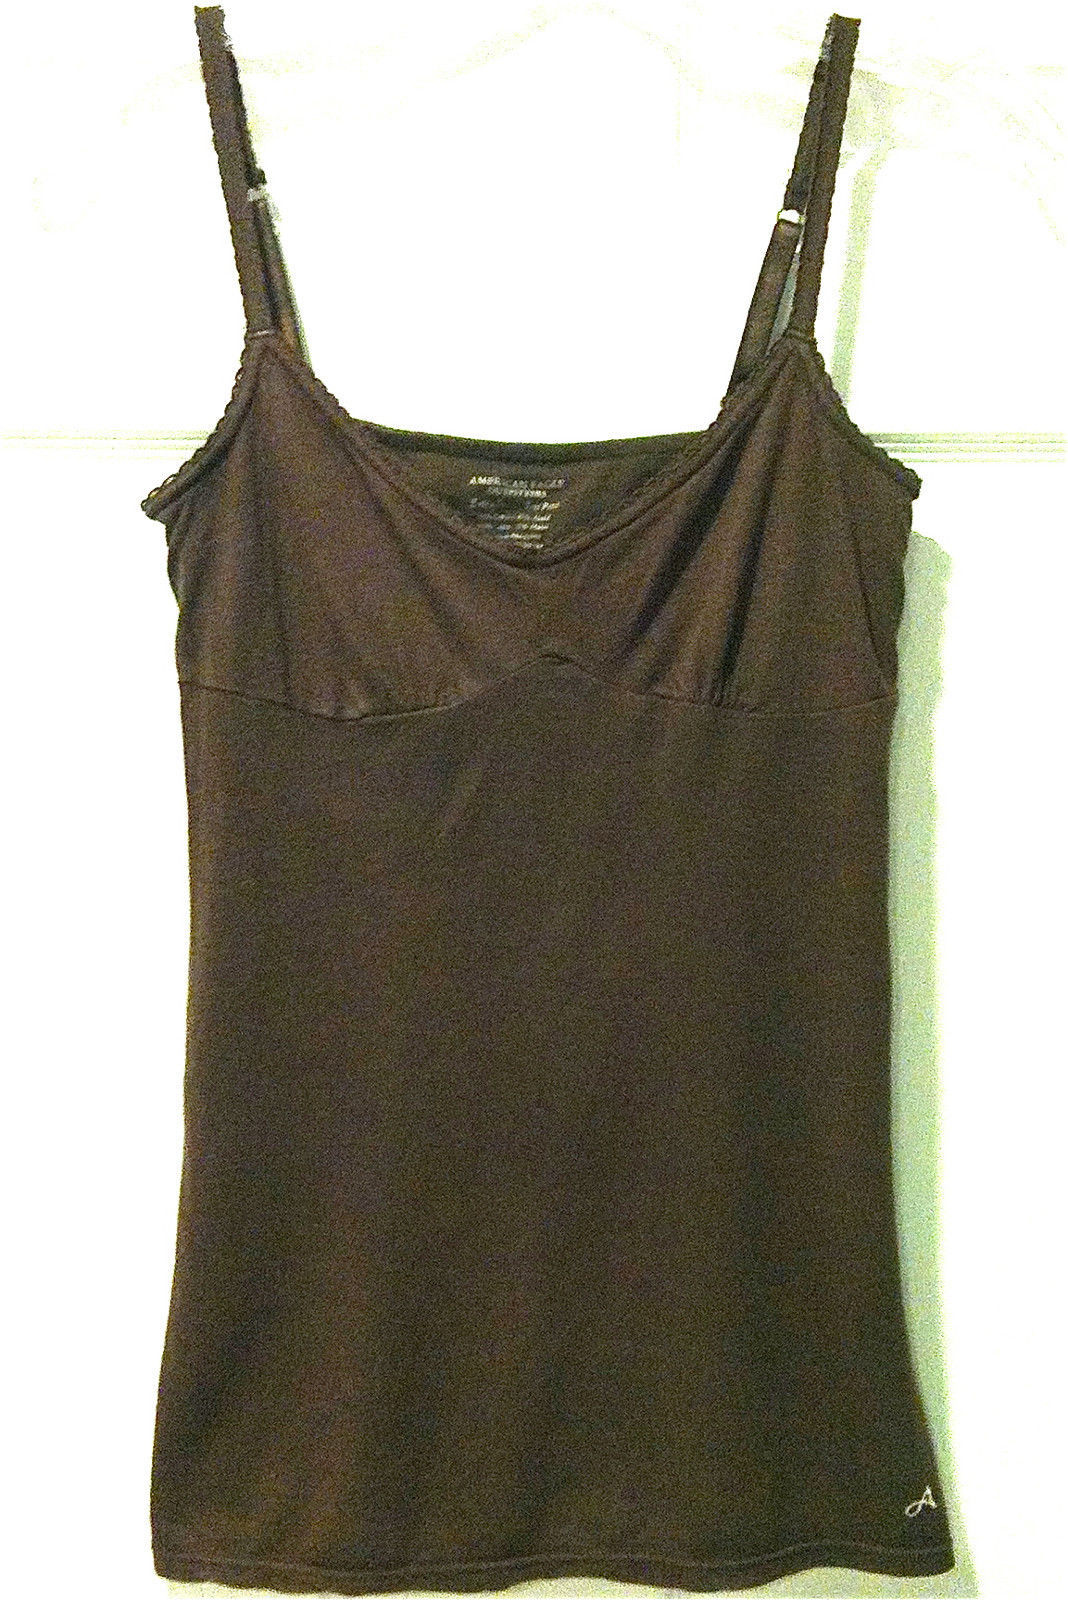 WOMENS AMERICAN EAGLE OUTFITTERS SZ XS BROWN CAMI TOP W/BRA ADJUSTABLE STRAPS - $7.99